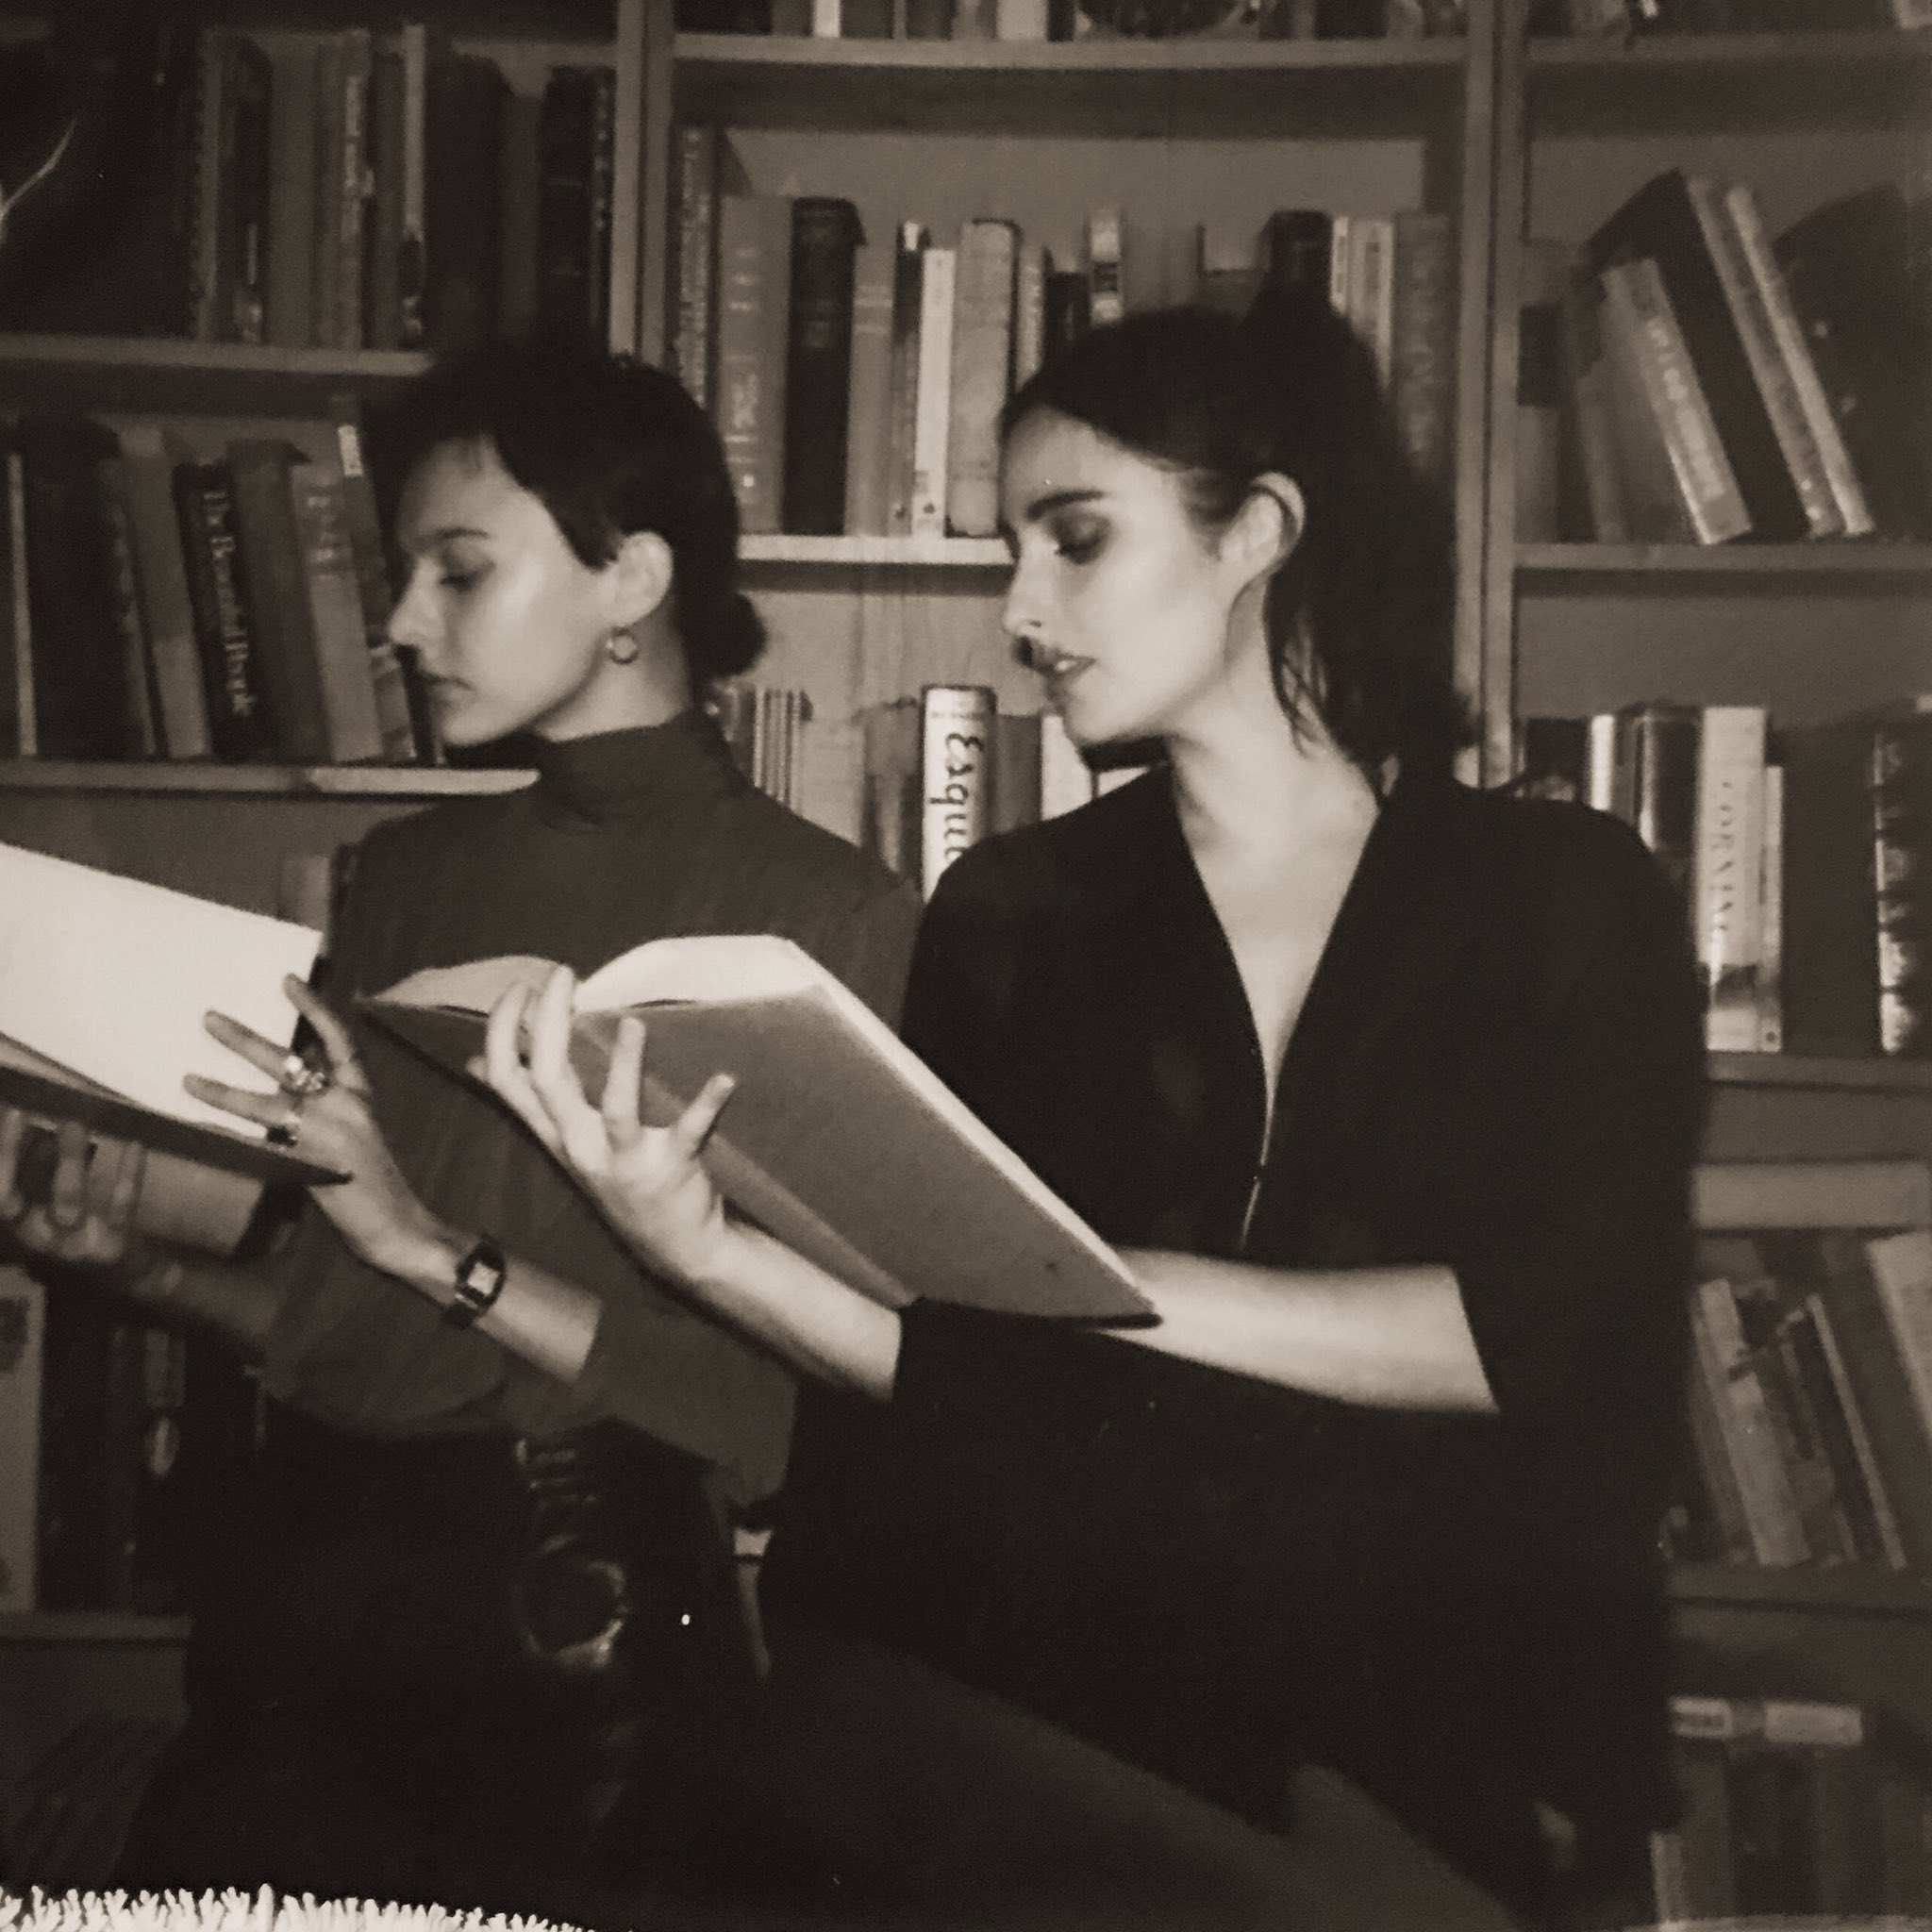 Our girl @morgansaint & @hernameisbanks doing some light reading after killing it in Phoenix last night ✨�� https://t.co/0zcufApUGt